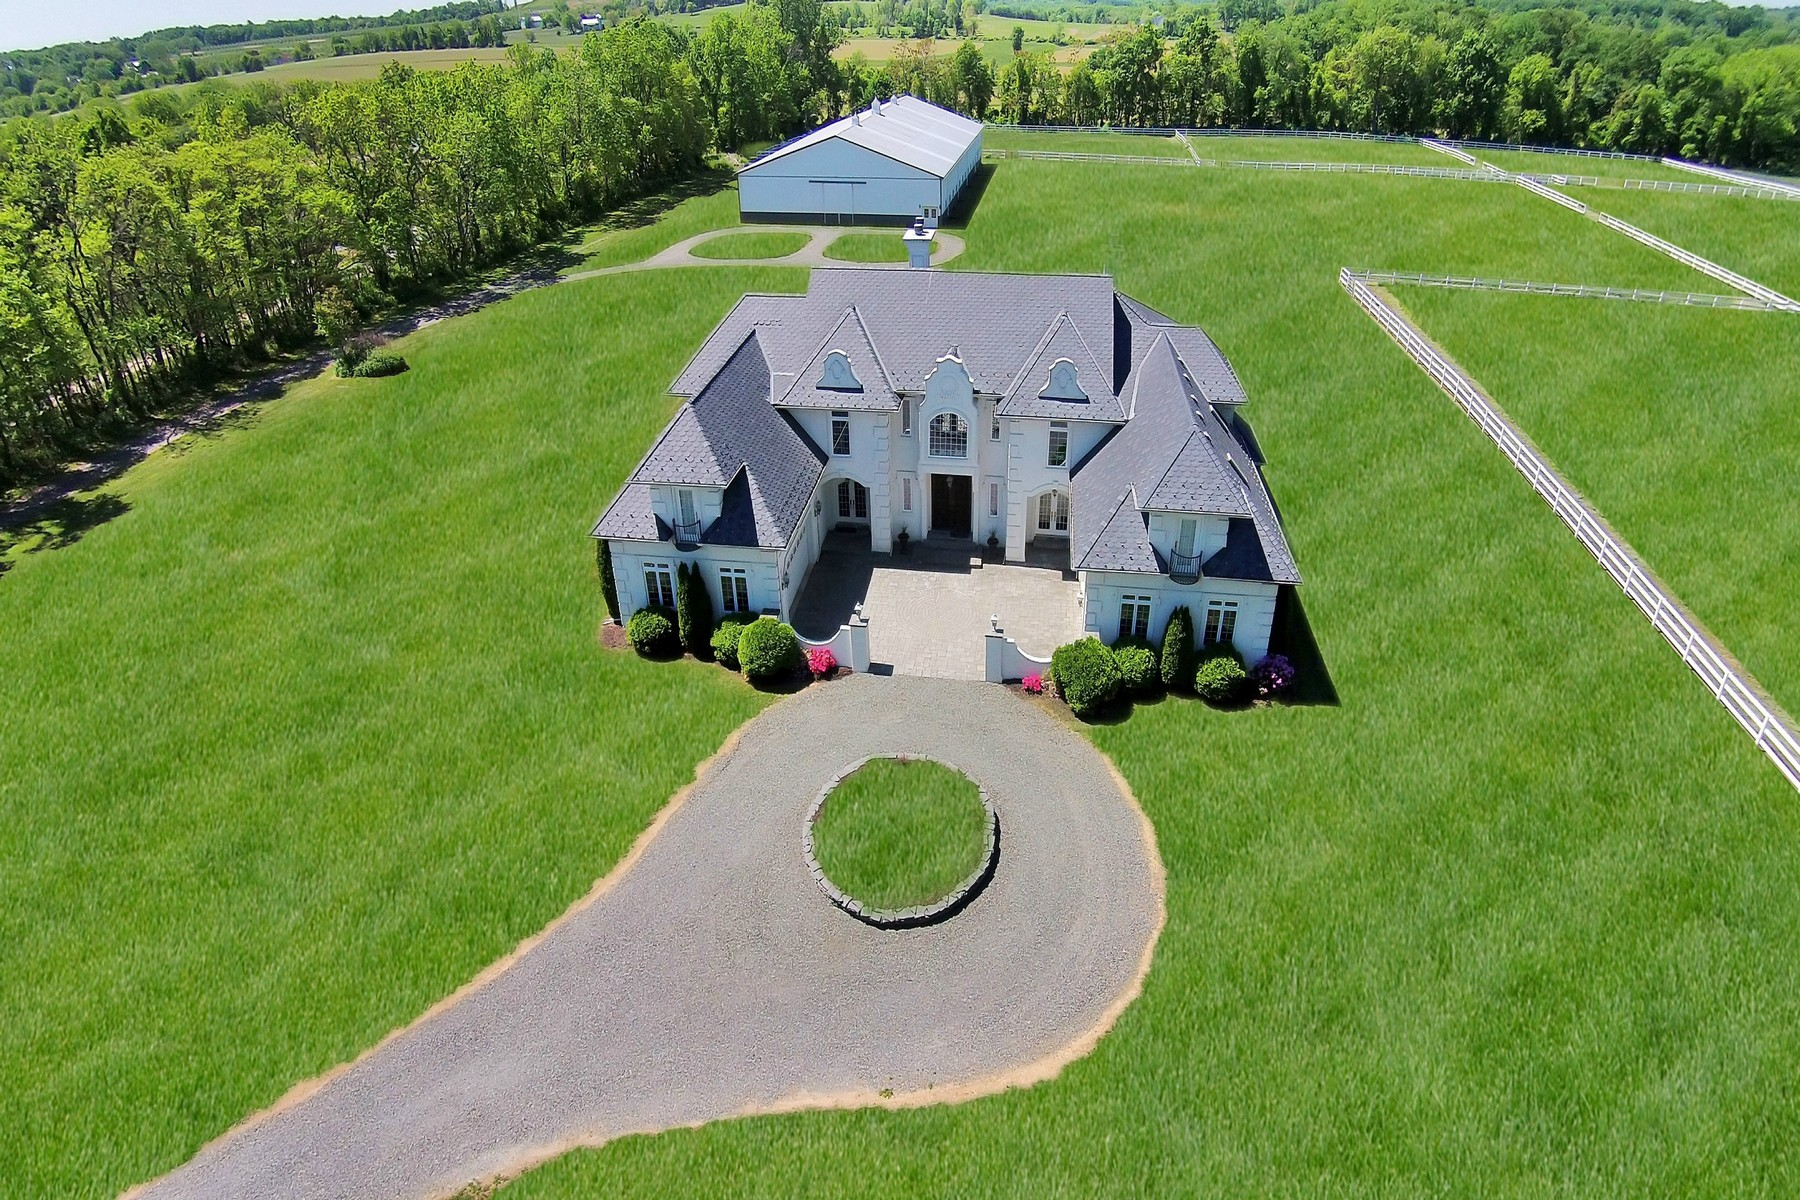 Single Family Home for Sale at Luxurious French Manor with Equine Facility 3-5 Hill and Dale Califon, 07830 United States